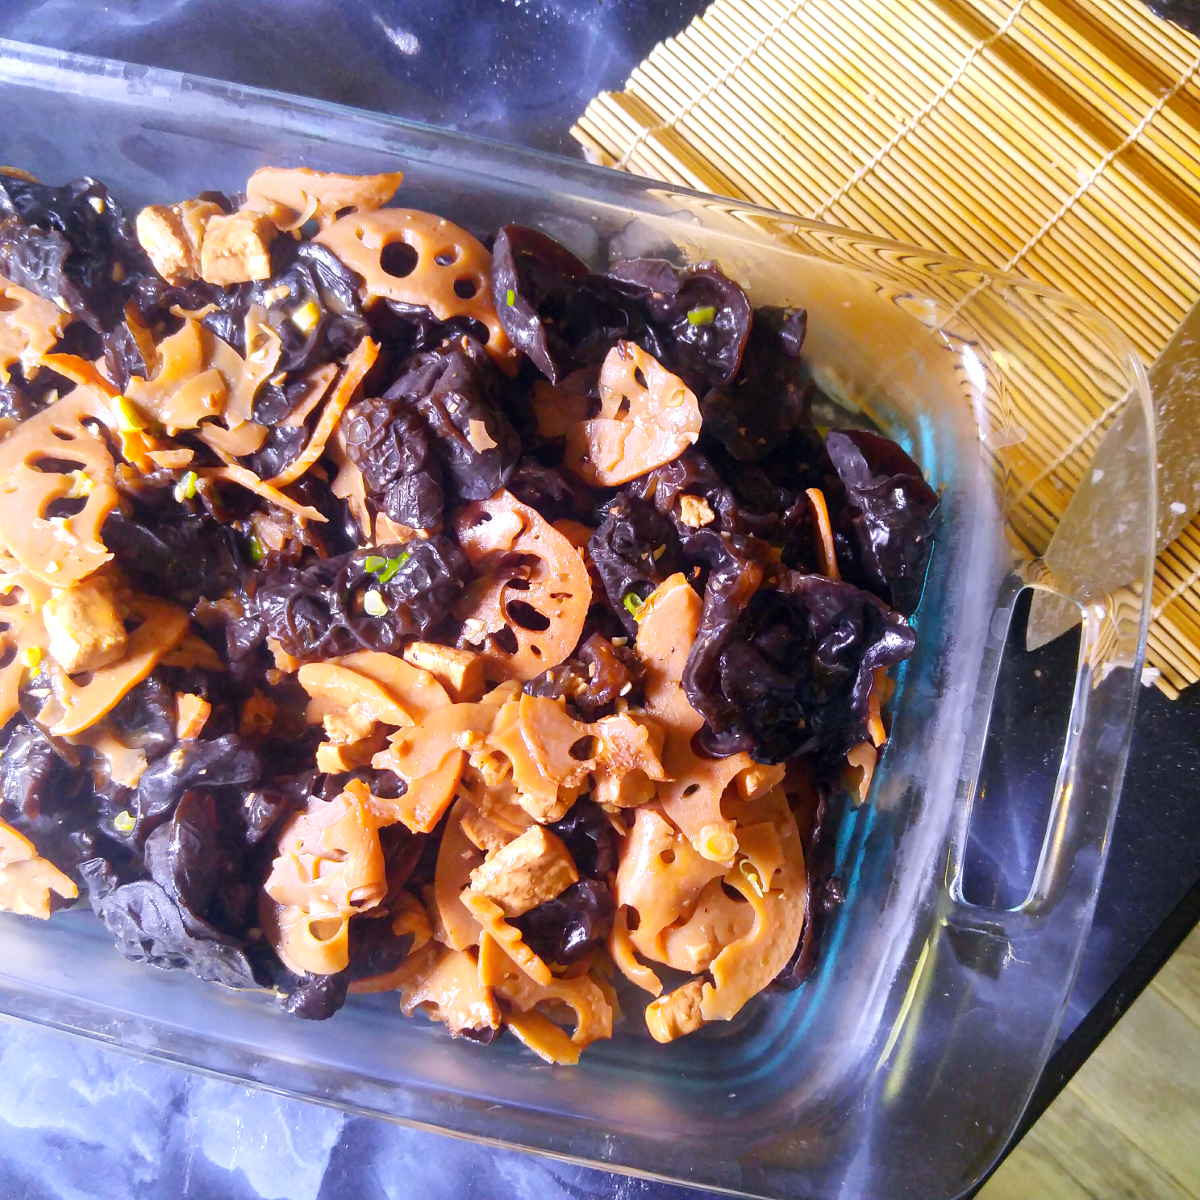 Lotus root wood ear mushroom tofu stir fry in a serving dish